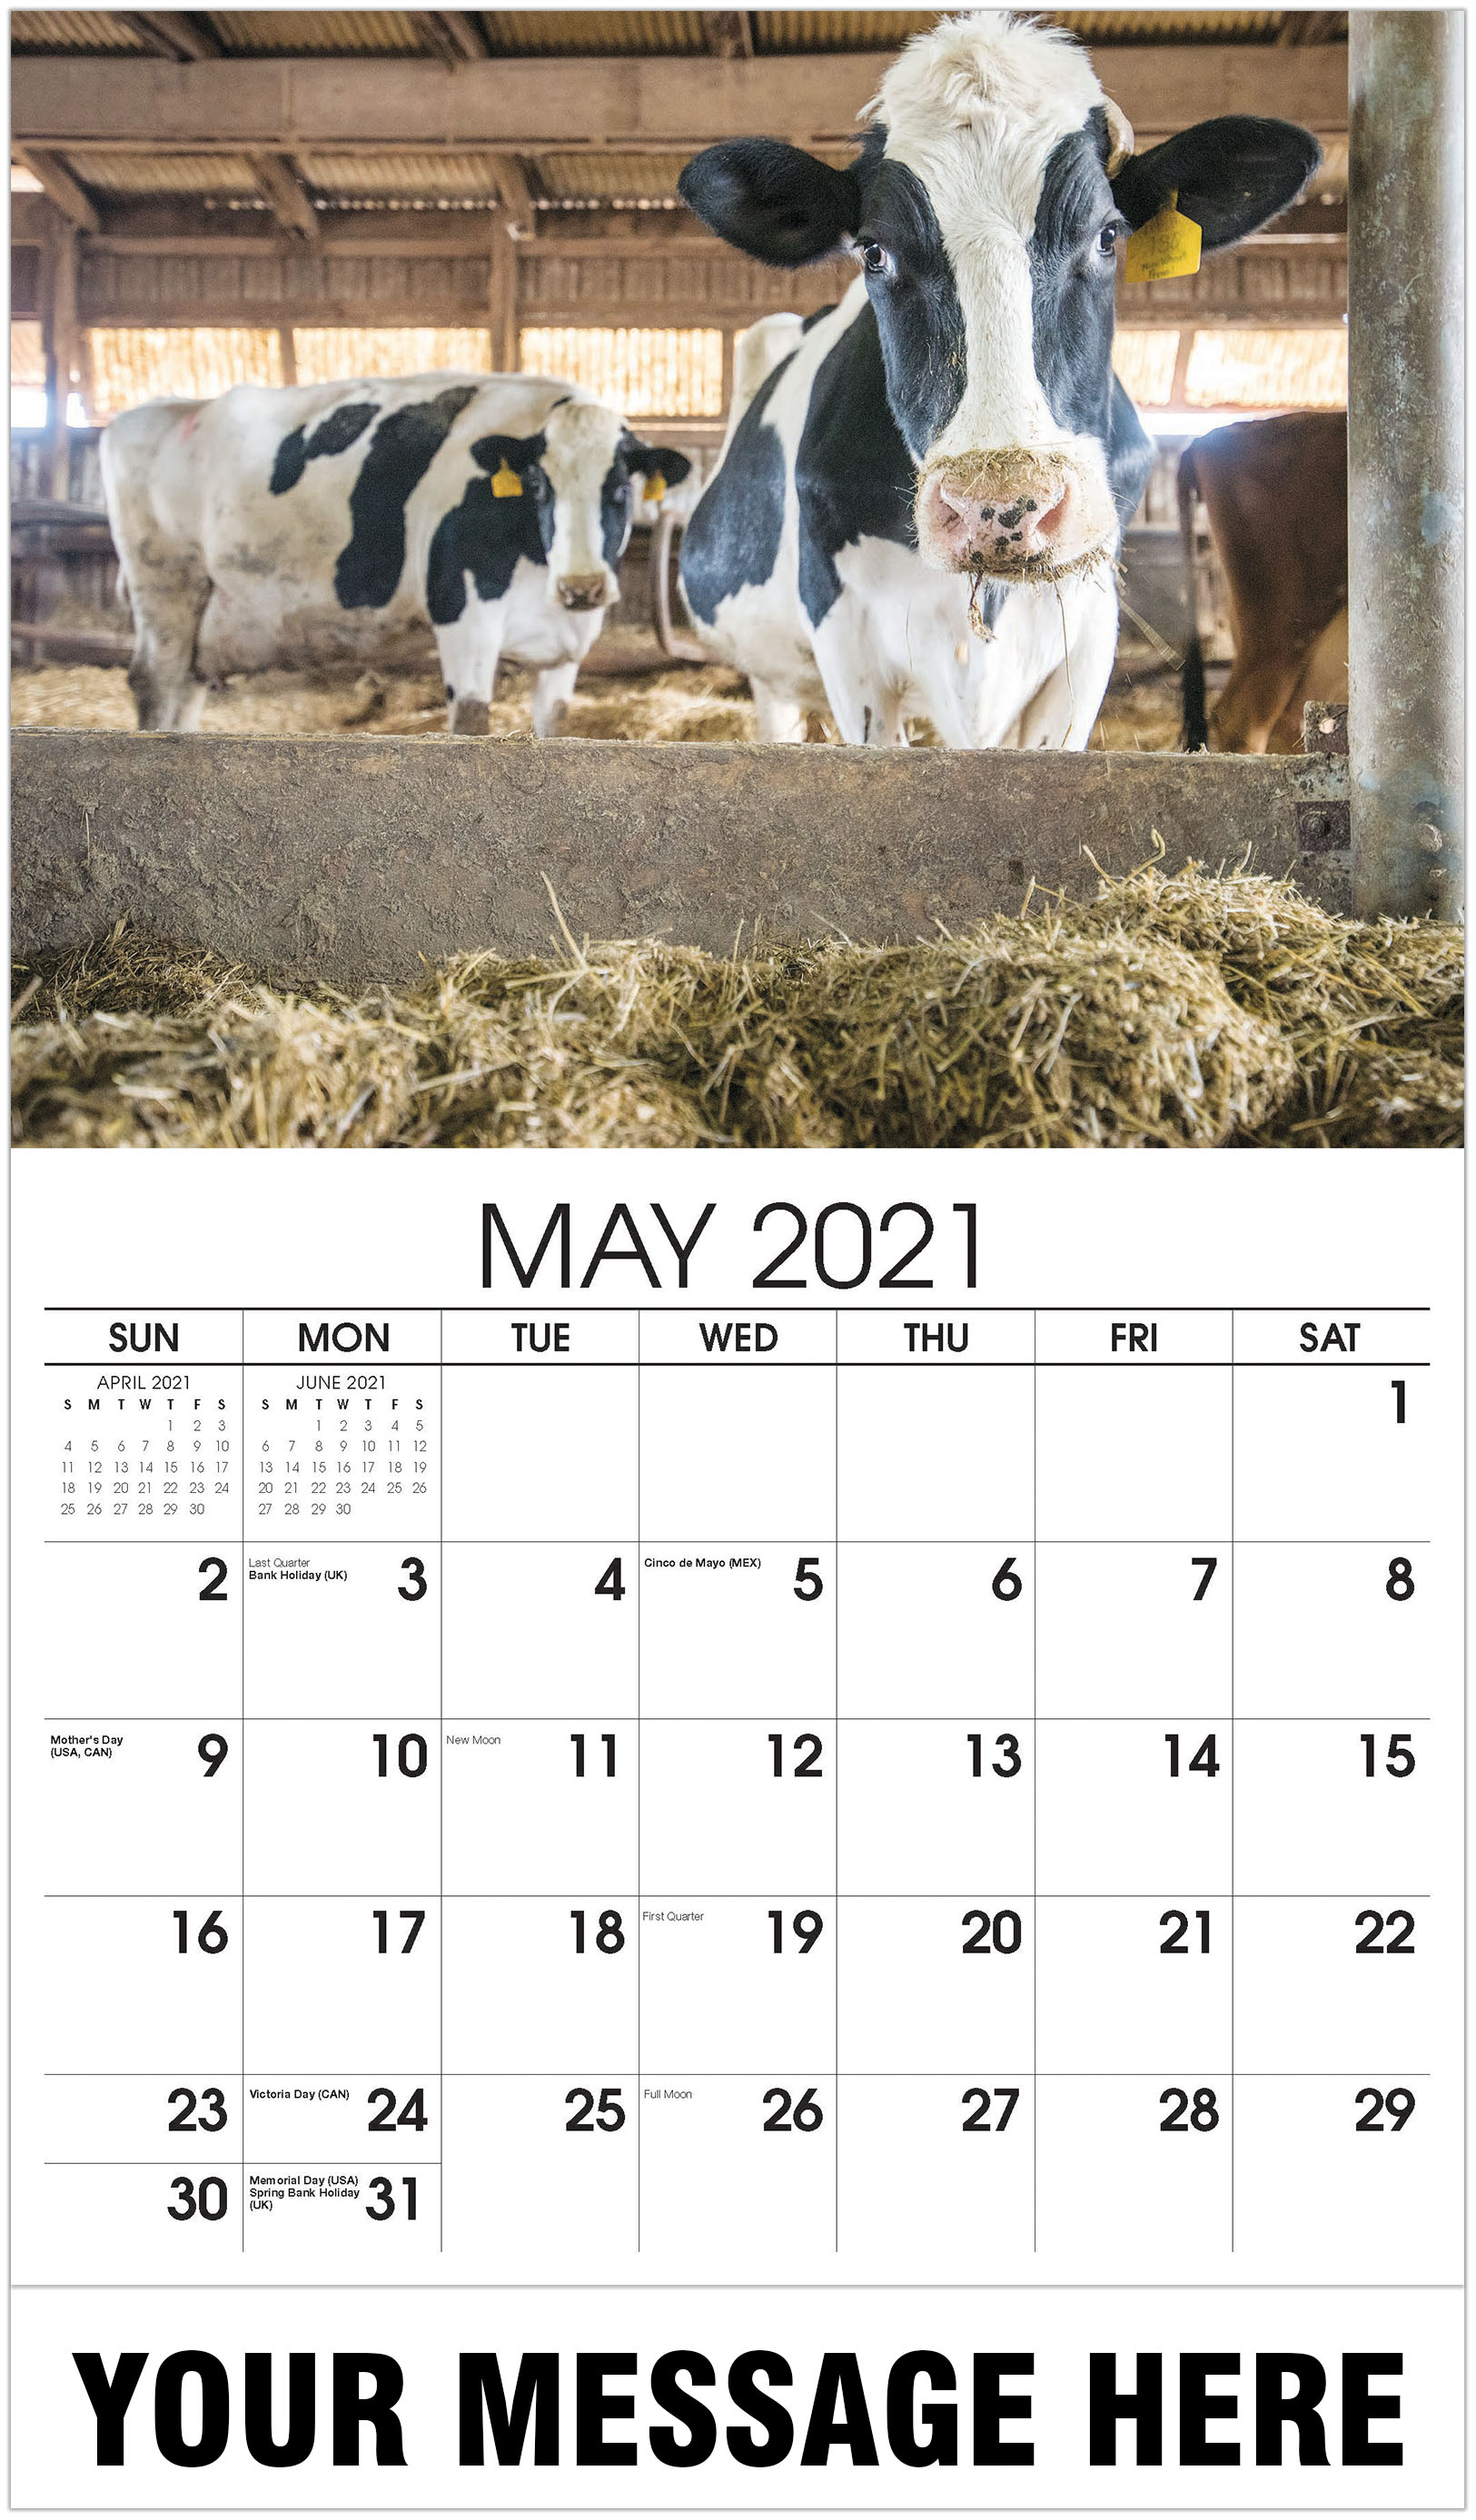 Cow - May - Country Spirit 2021 Promotional Calendar